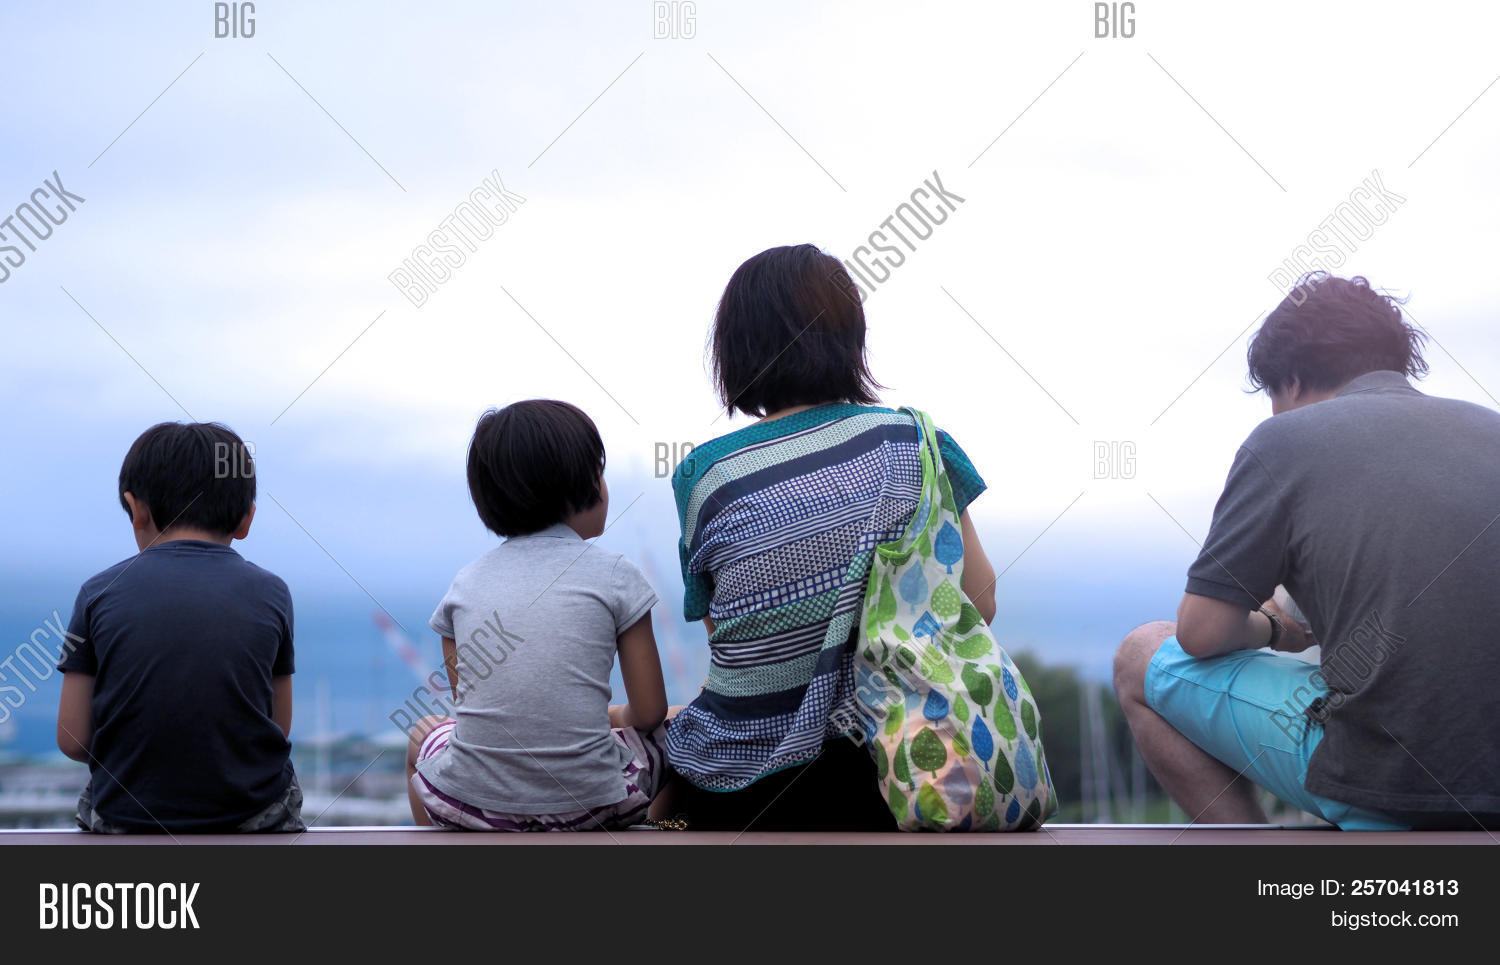 Behind Images Family Image & Photo (Free Trial) | Bigstock